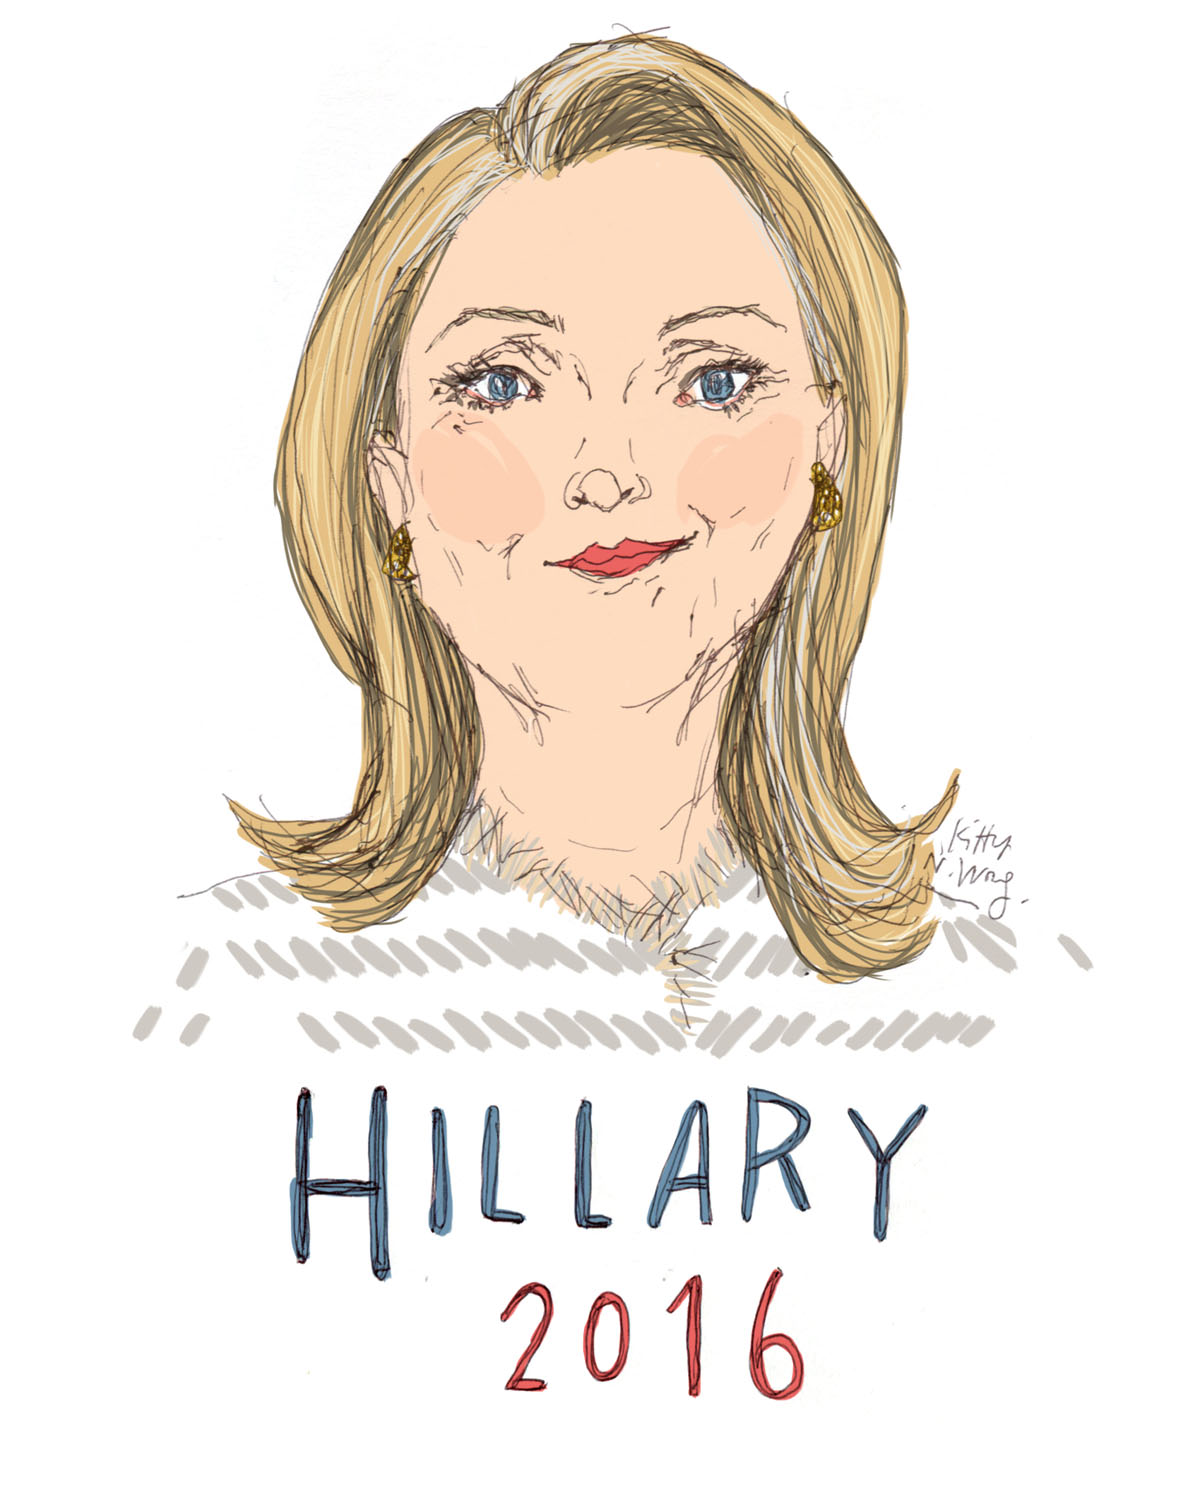 Kitty N. Wong / Hillary Clinton 2016 Illustration